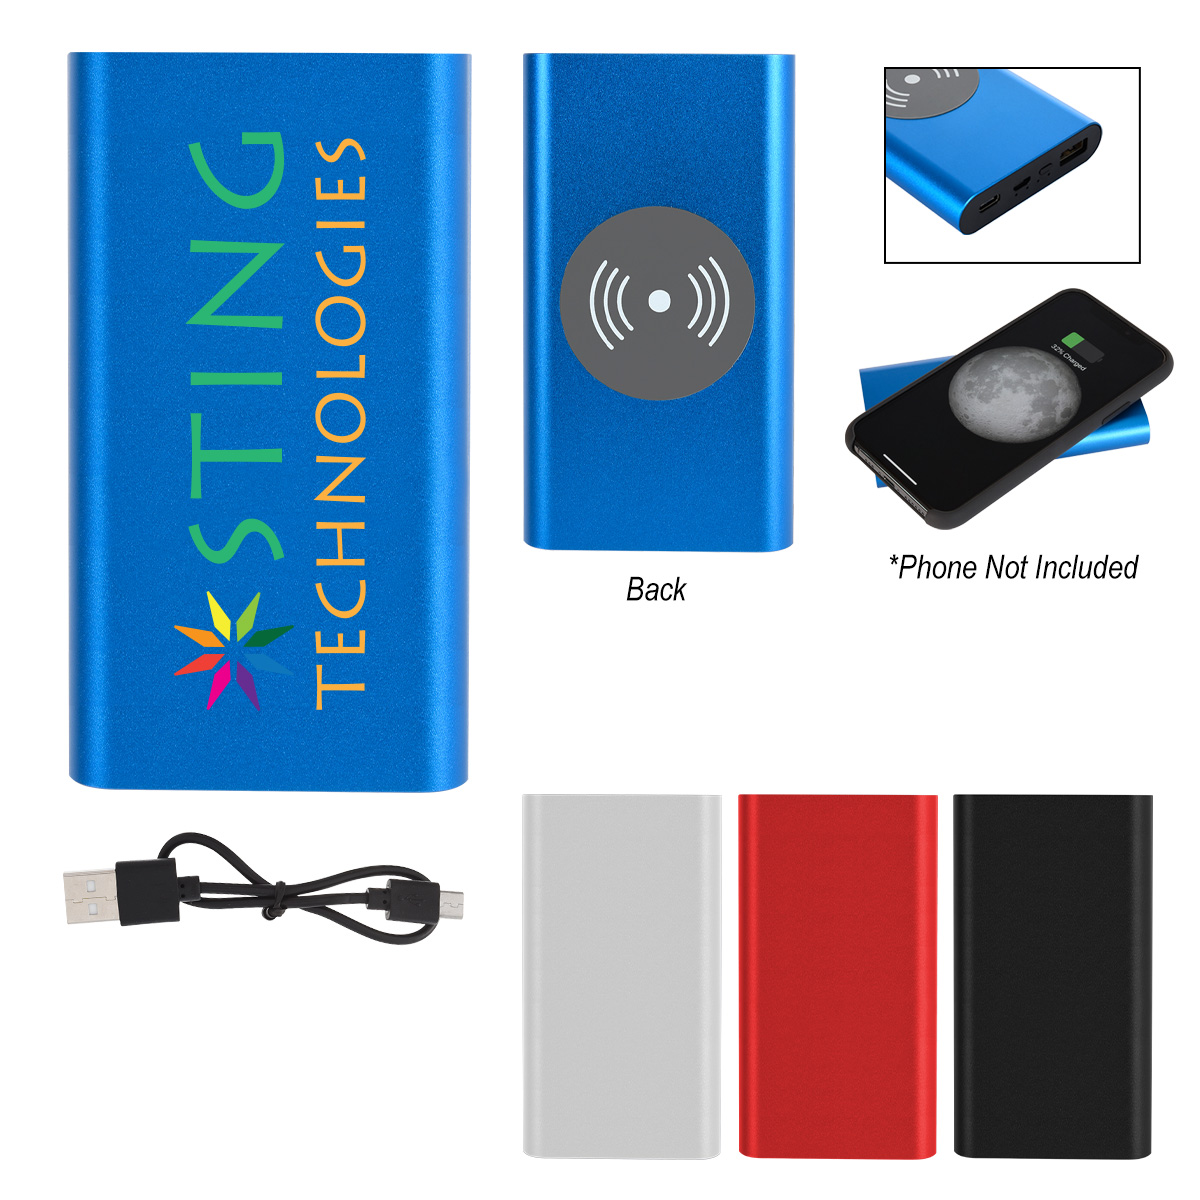 HIGH DENSITY WIRELESS CHARGER & POWER BANK